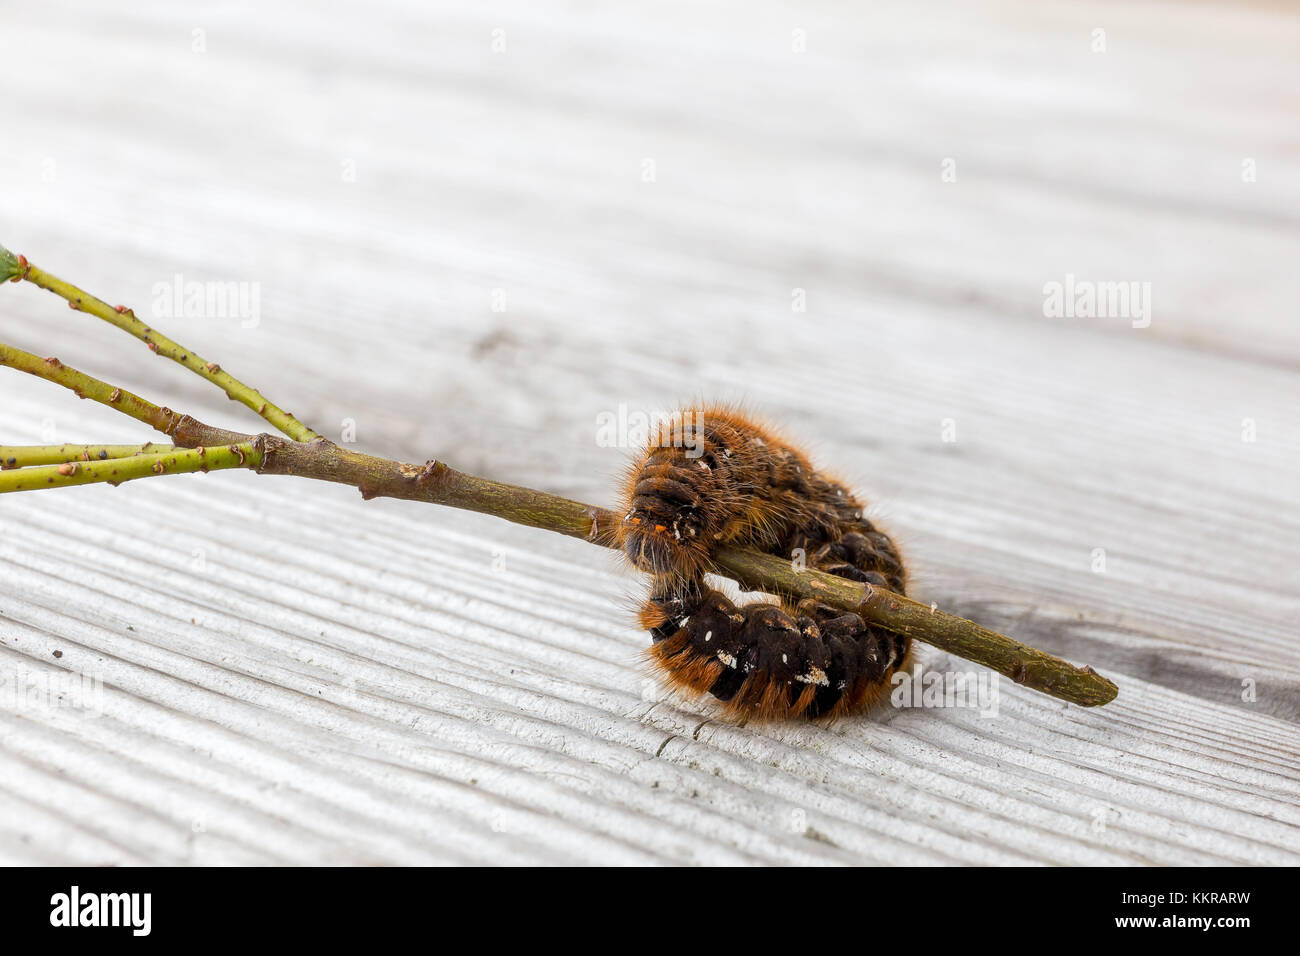 caterpillar on a twig - Stock Image